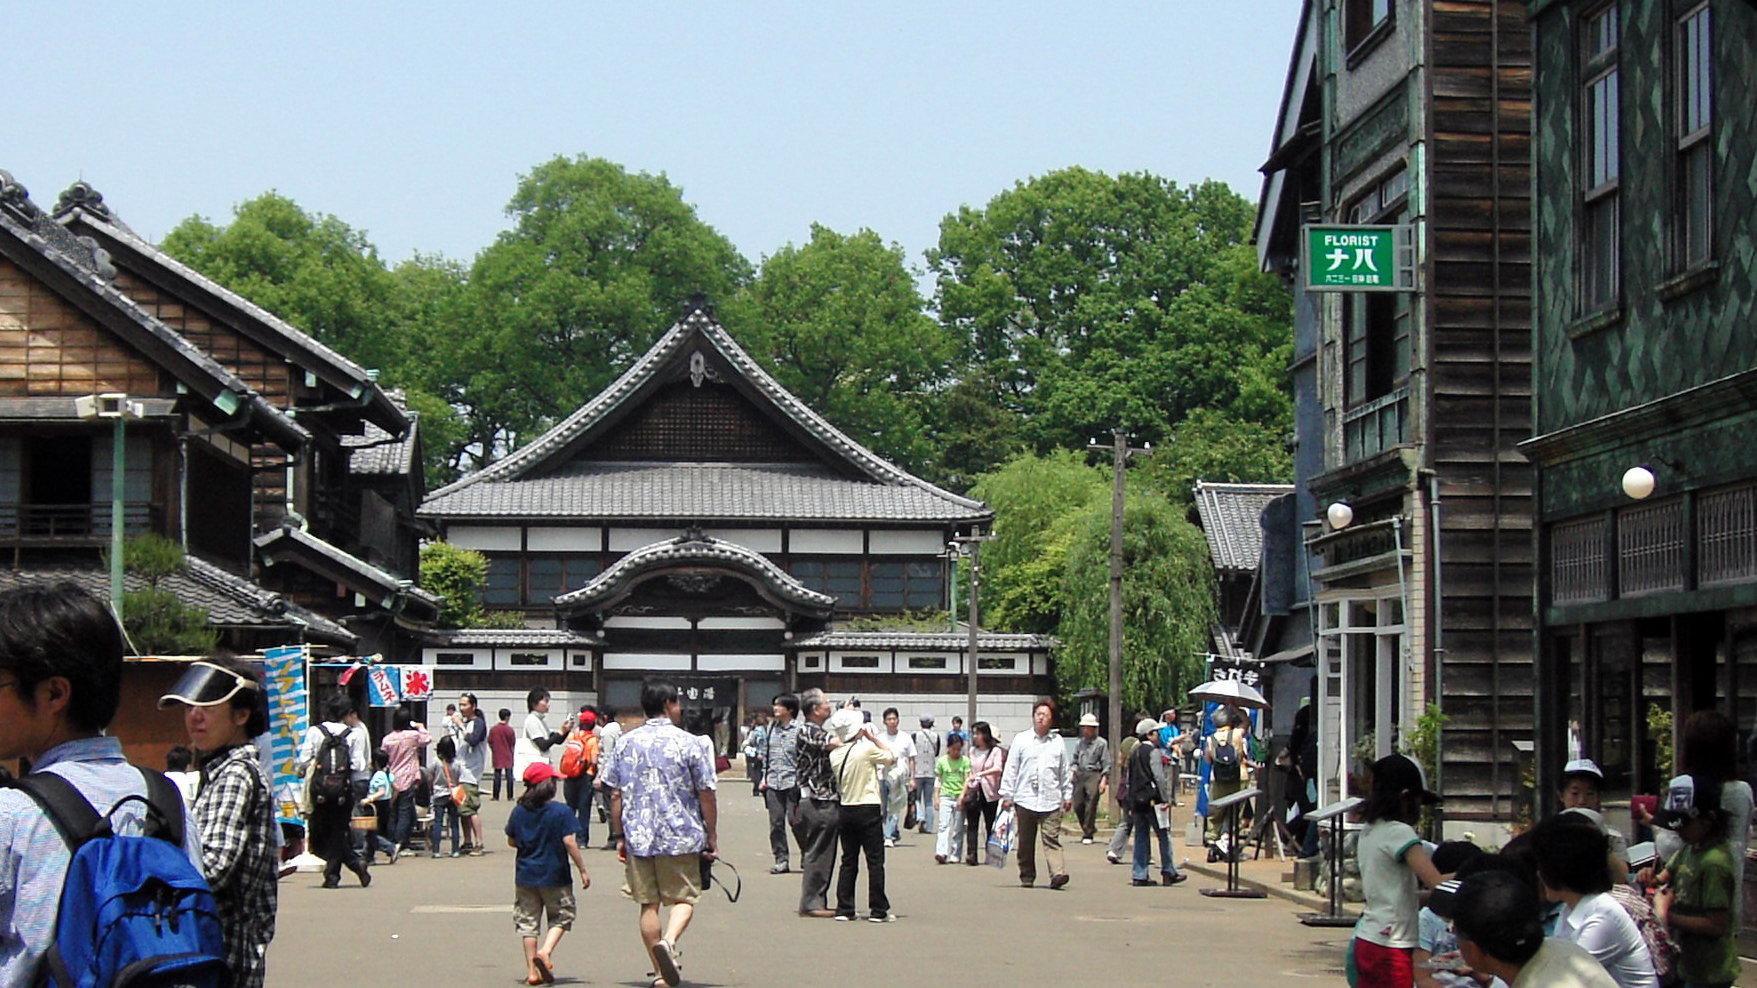 Edo Tokyo Open Air Architectural Museum The Japan Times